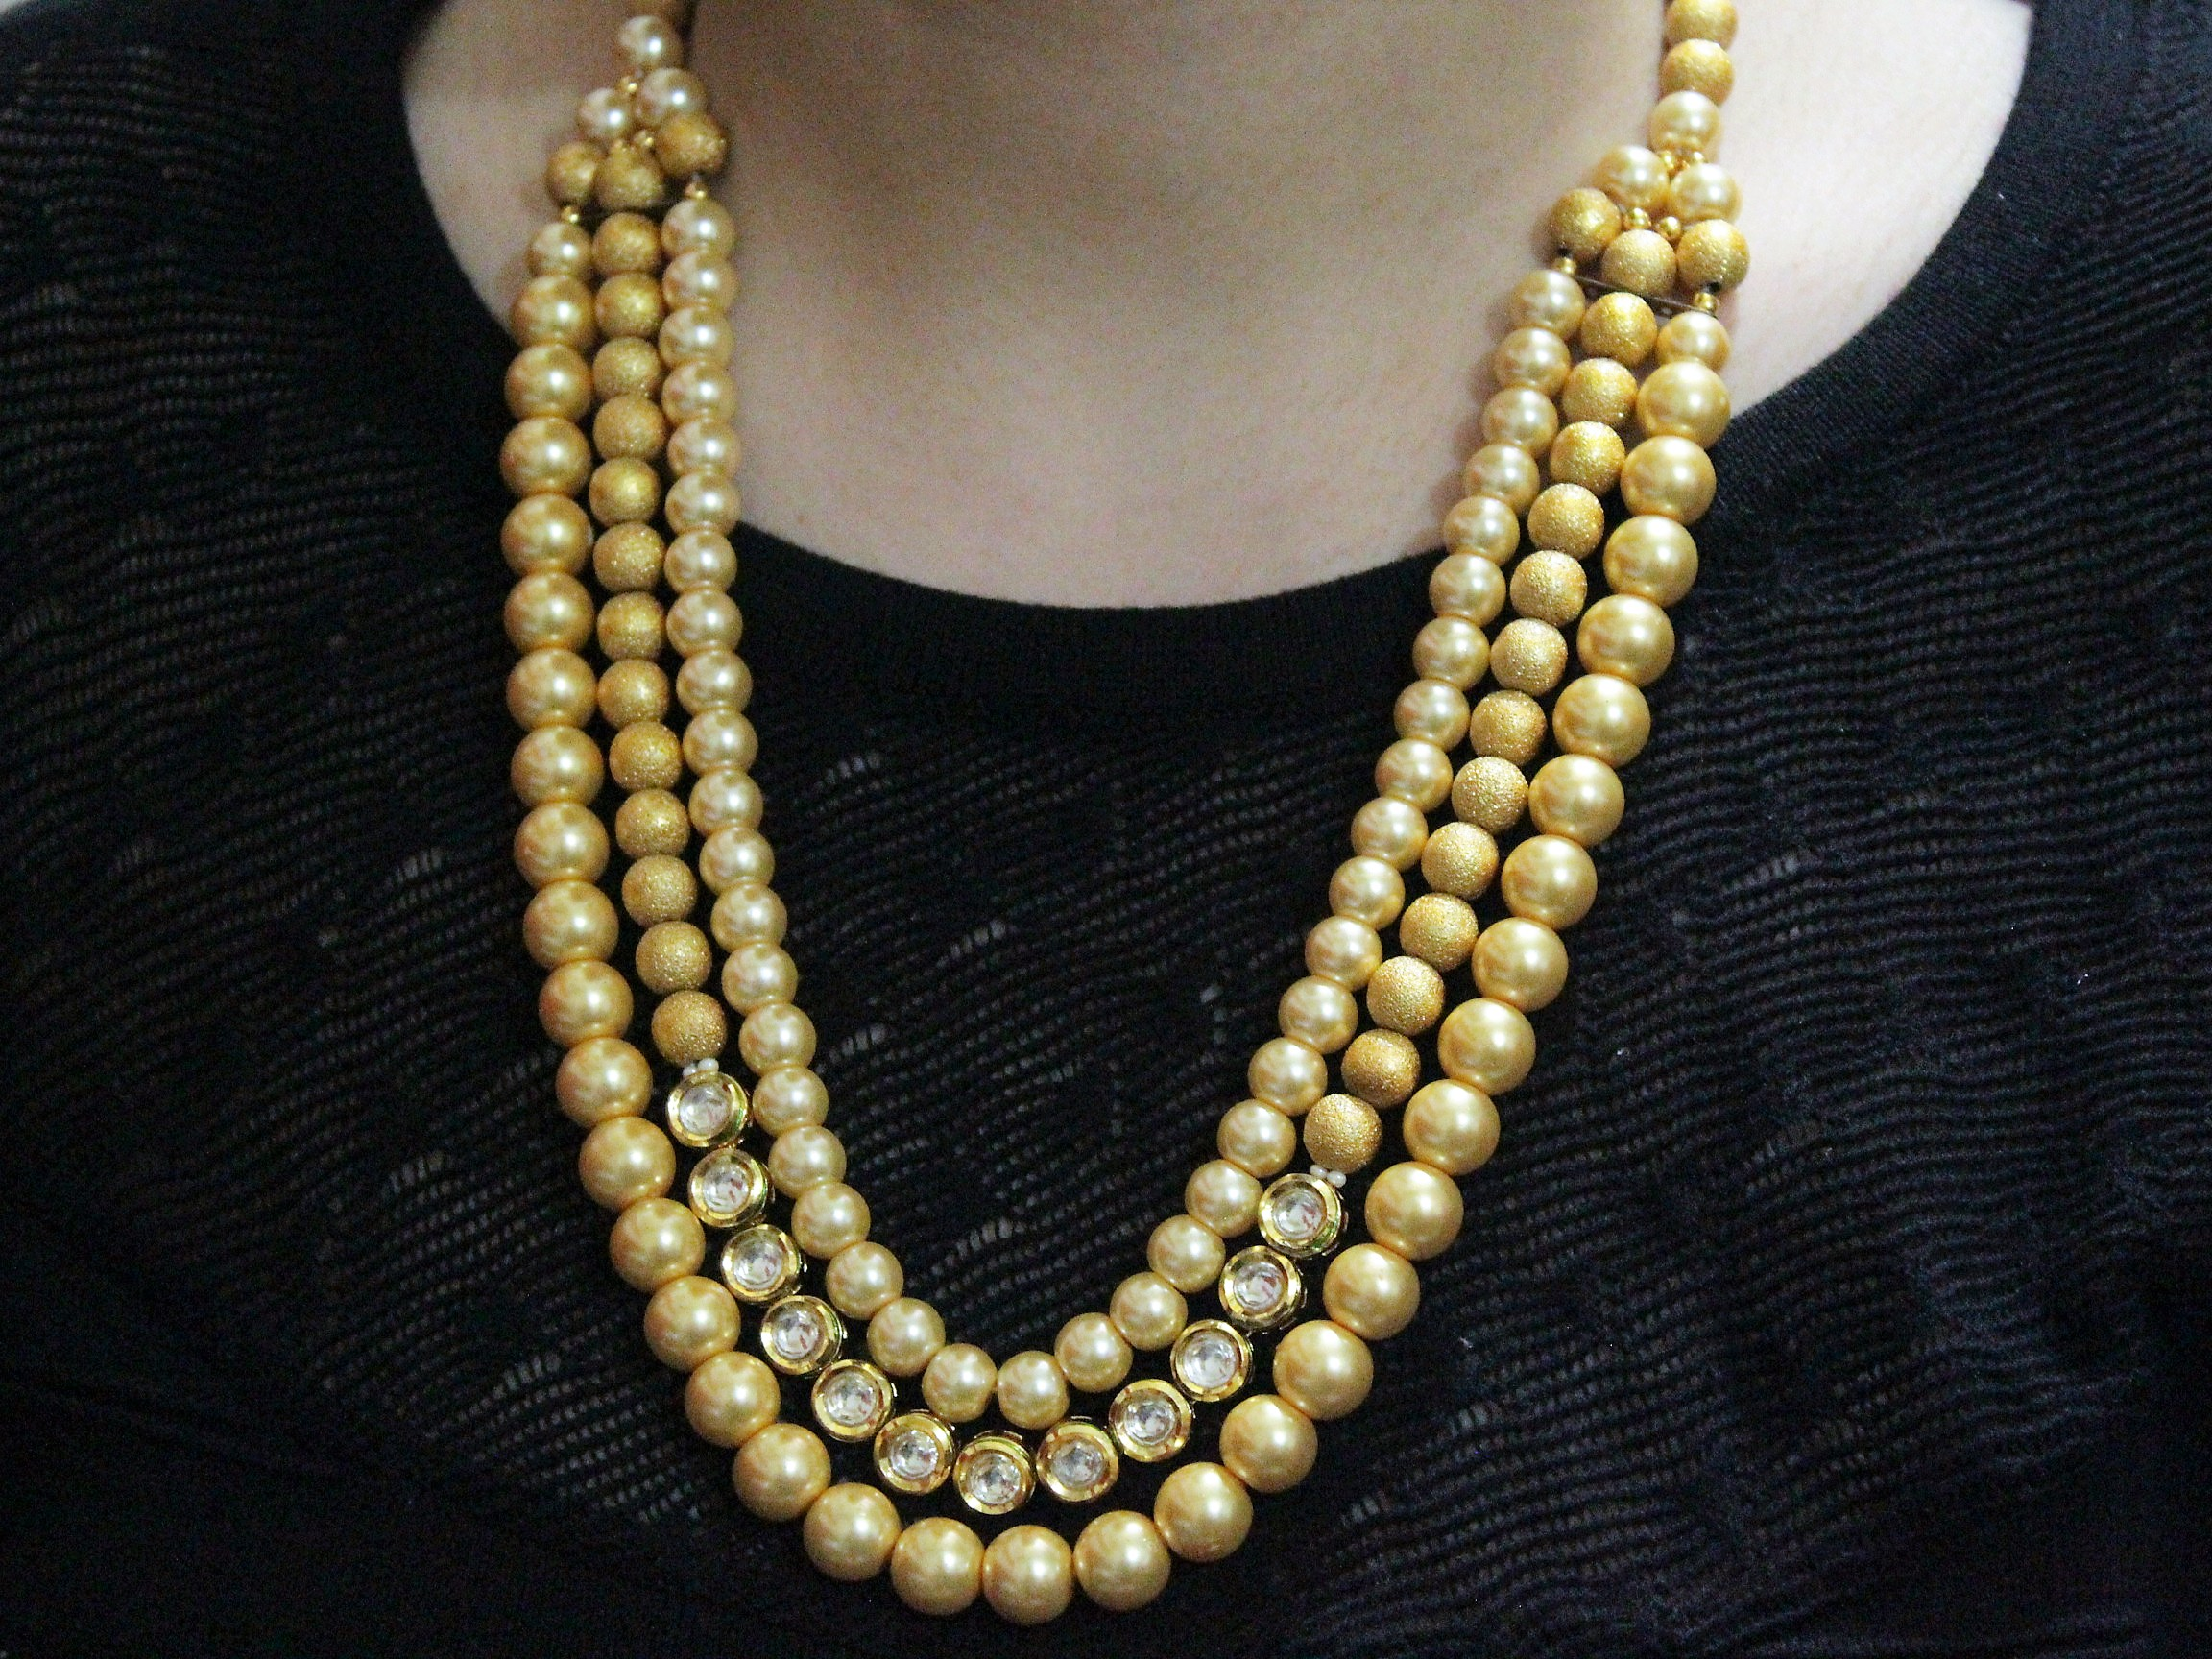 IndiHaute, pearl kundan long neckalce online india , pearl kundan long necklace for cheap , pearl kundan long necklace for price , pearl kundan long necklace online purchase